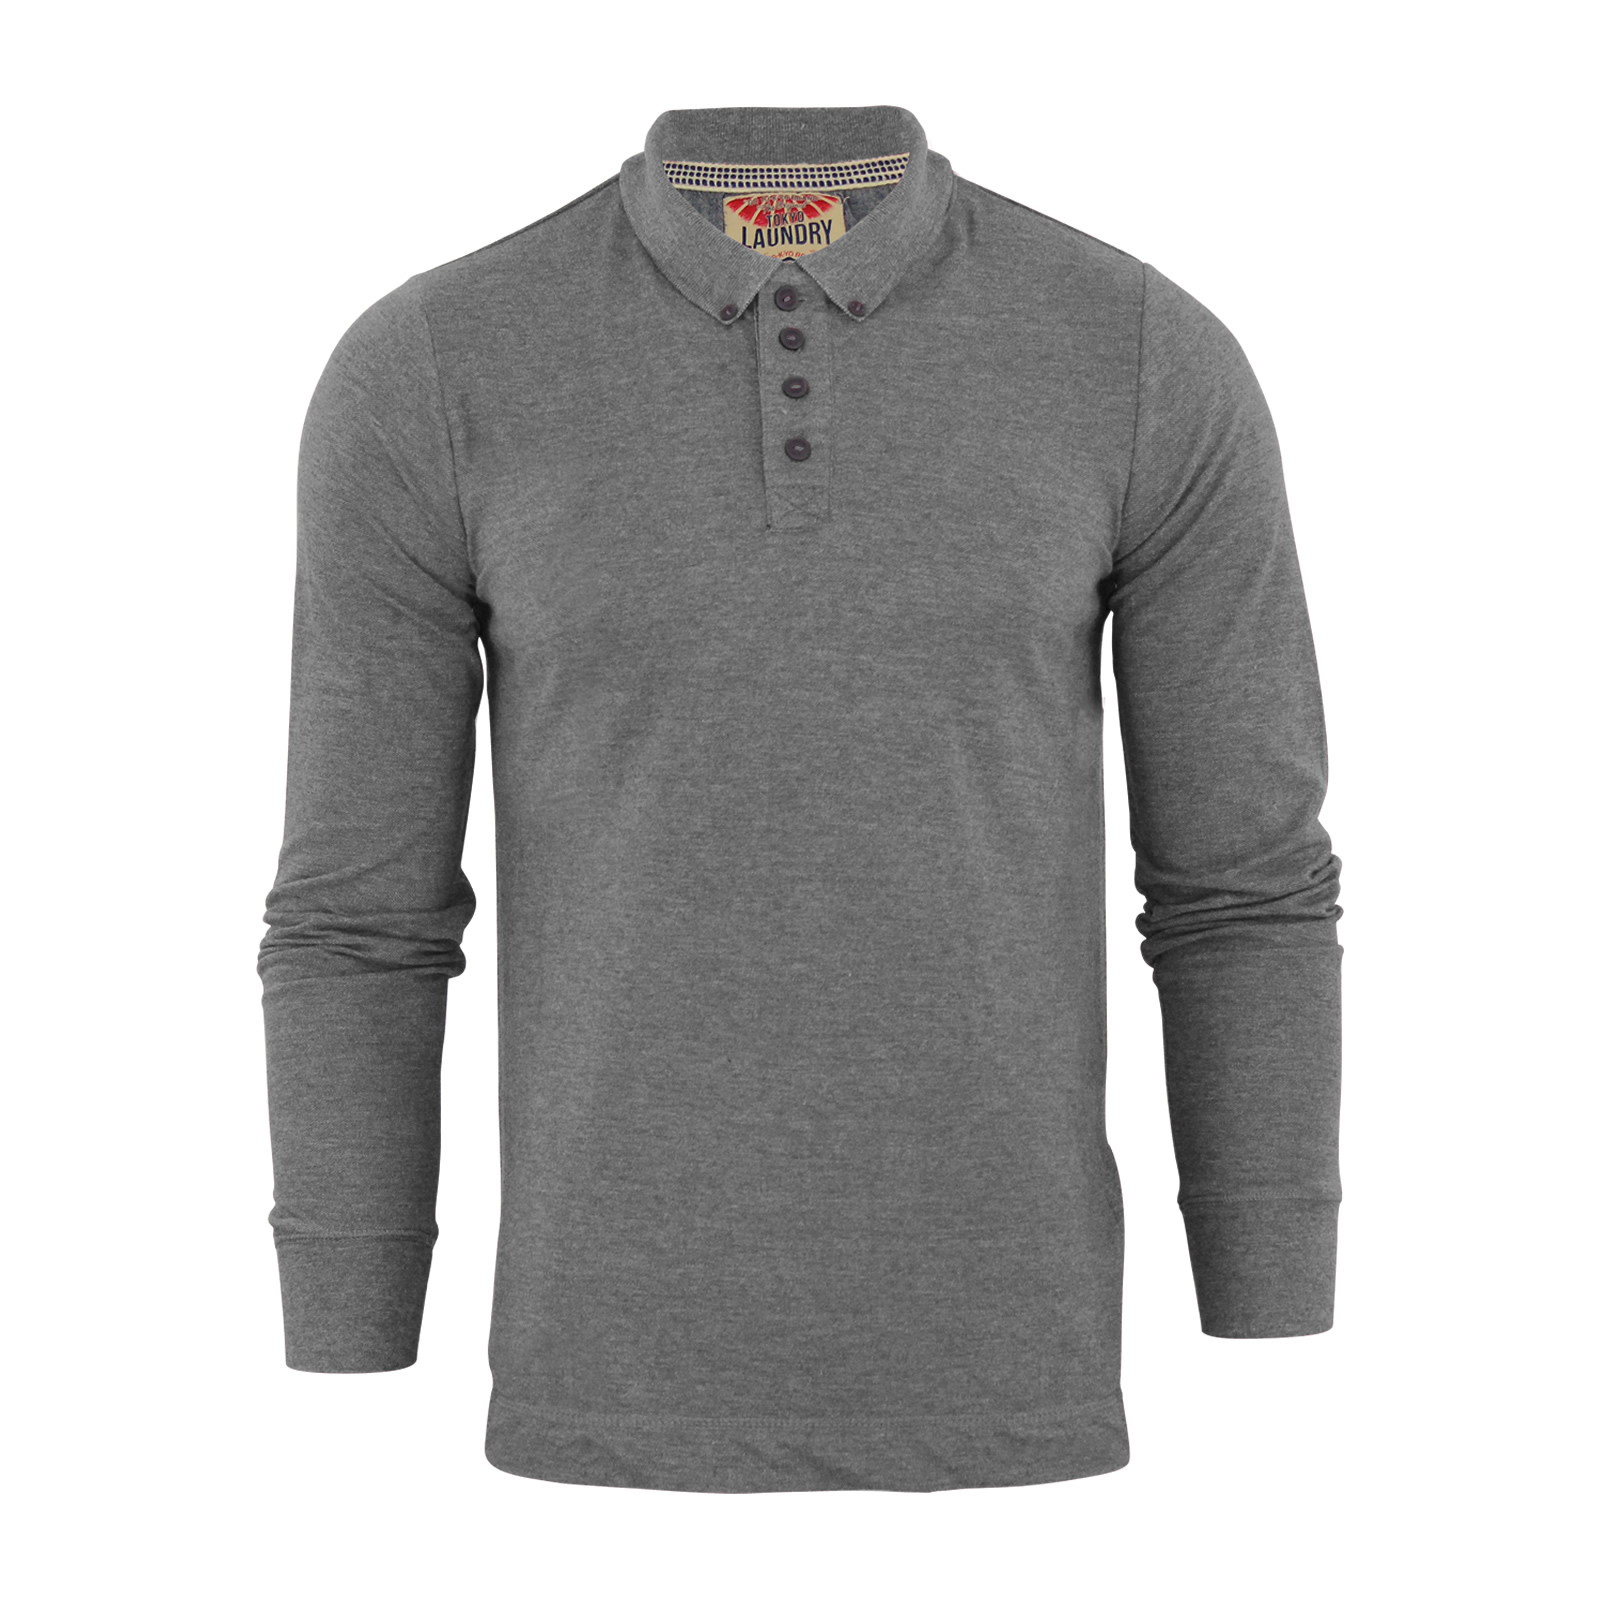 Polo Shirts, Tops & T-Shirts An essential item in every man's wardrobe, you'll find a great range of men's polo shirts and T-shirts at GAZMAN. Renowned for their quality and craftsmanship, our polos are perfect for a weekend game of golf or casual Fridays in the office.